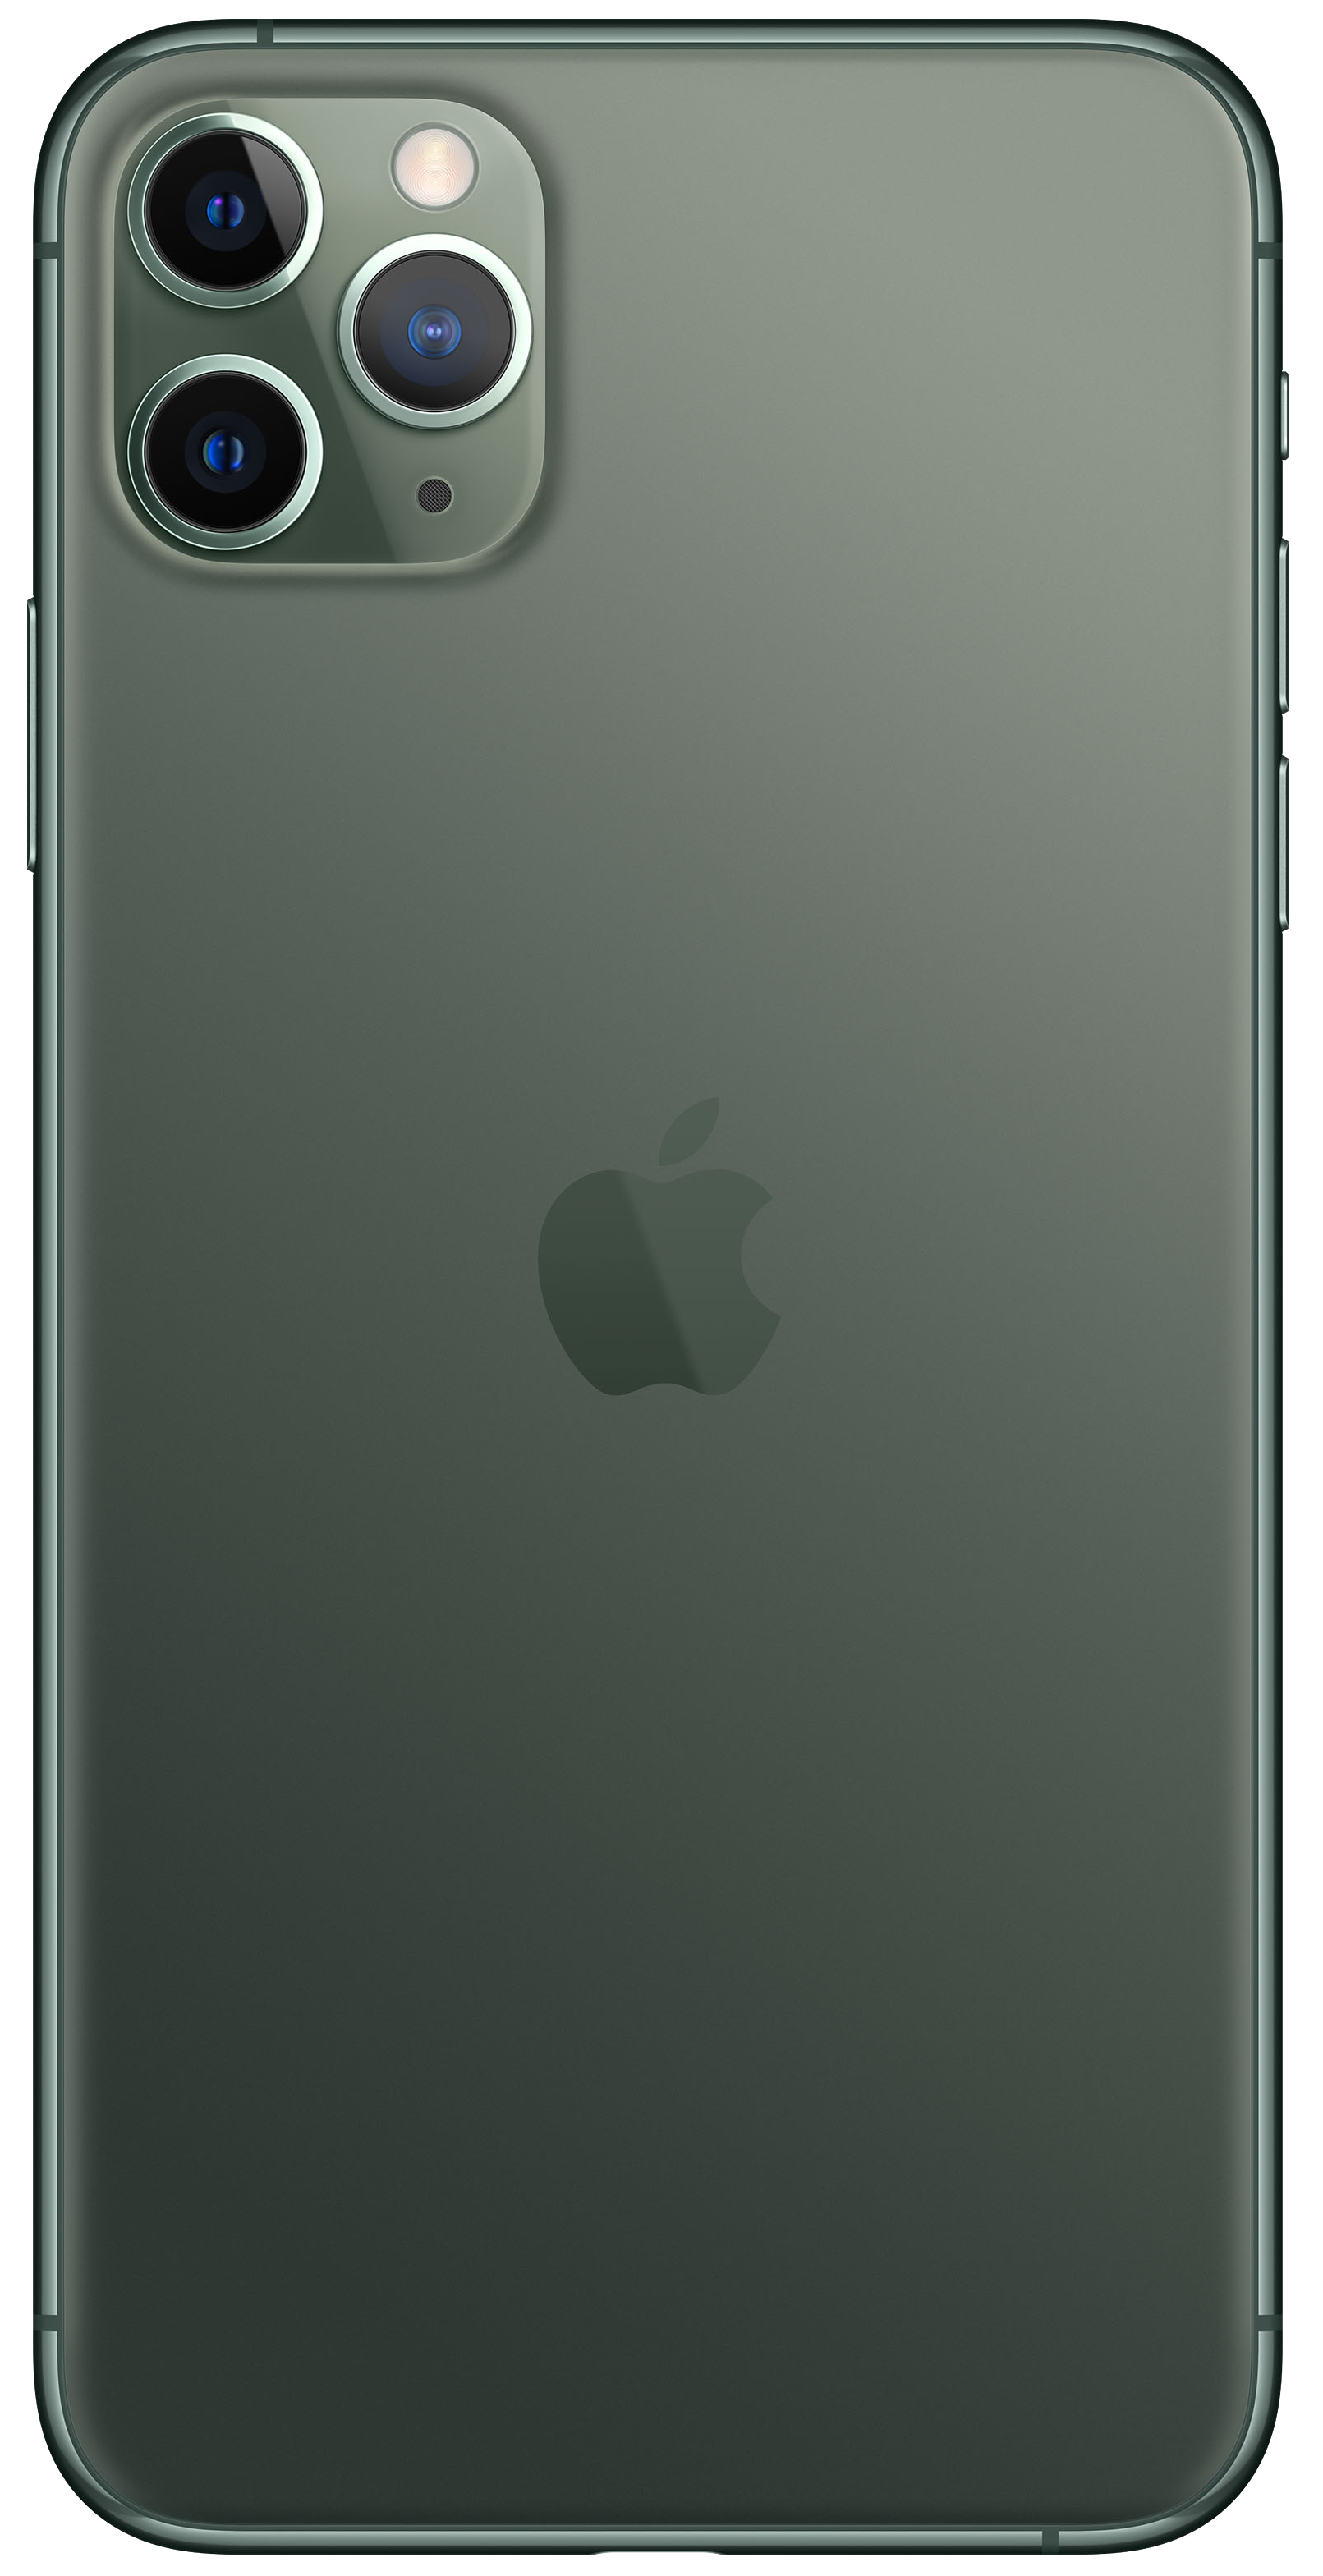 Apple Iphone Deals Compare Our Best Apple Contracts